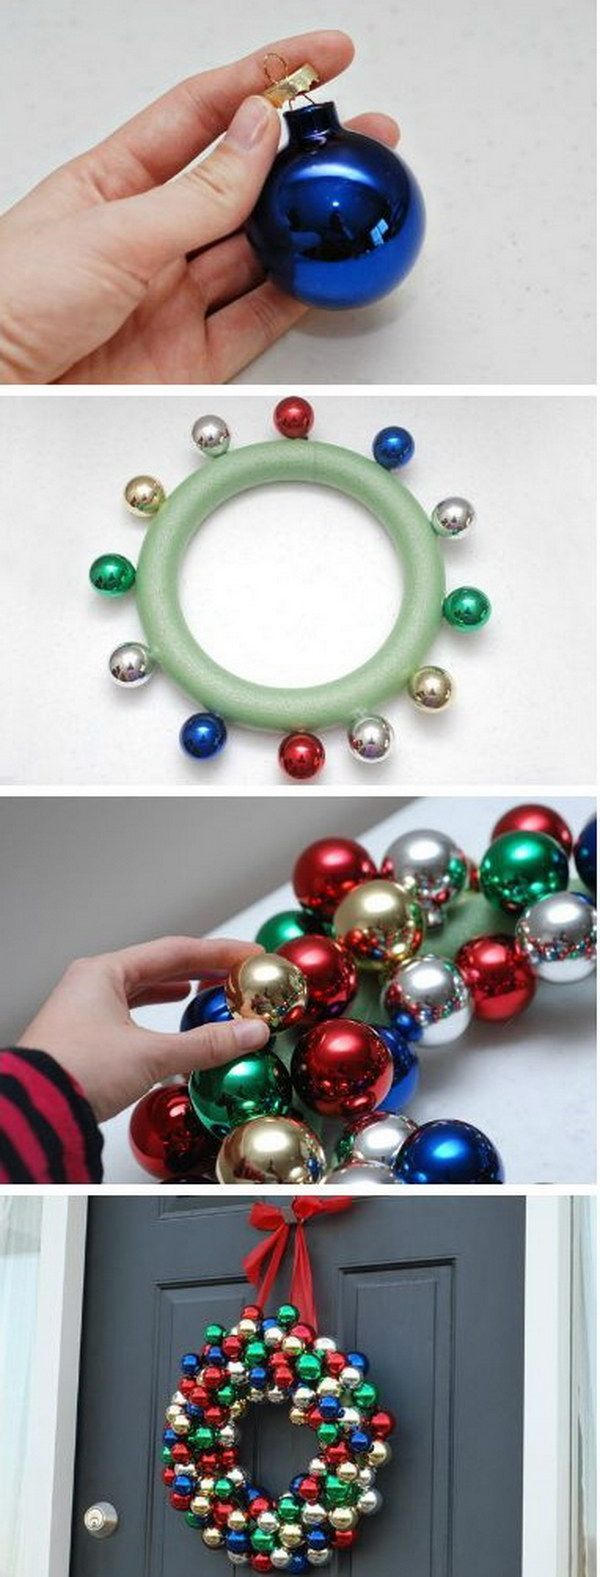 How to make a christmas decor out of recycled materials - 25 Diy Ideas Tutorials For Christmas Decoration